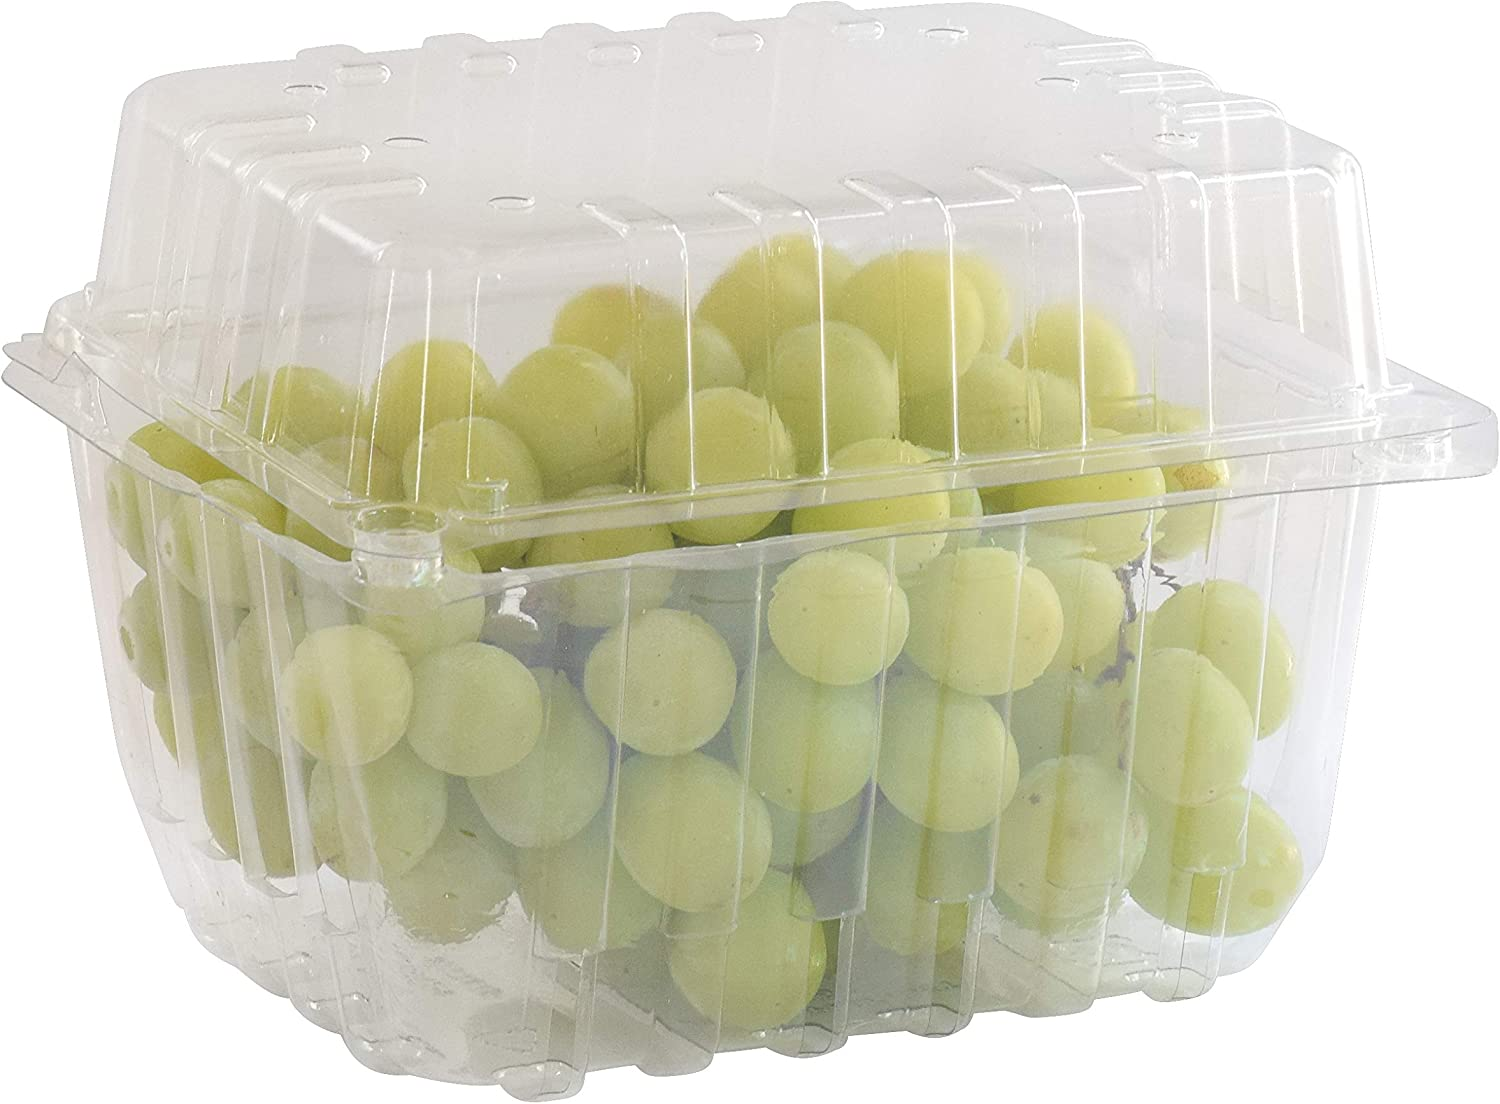 75 Pack - Quart Berry/Produce Basket - Vented Plastic Containers